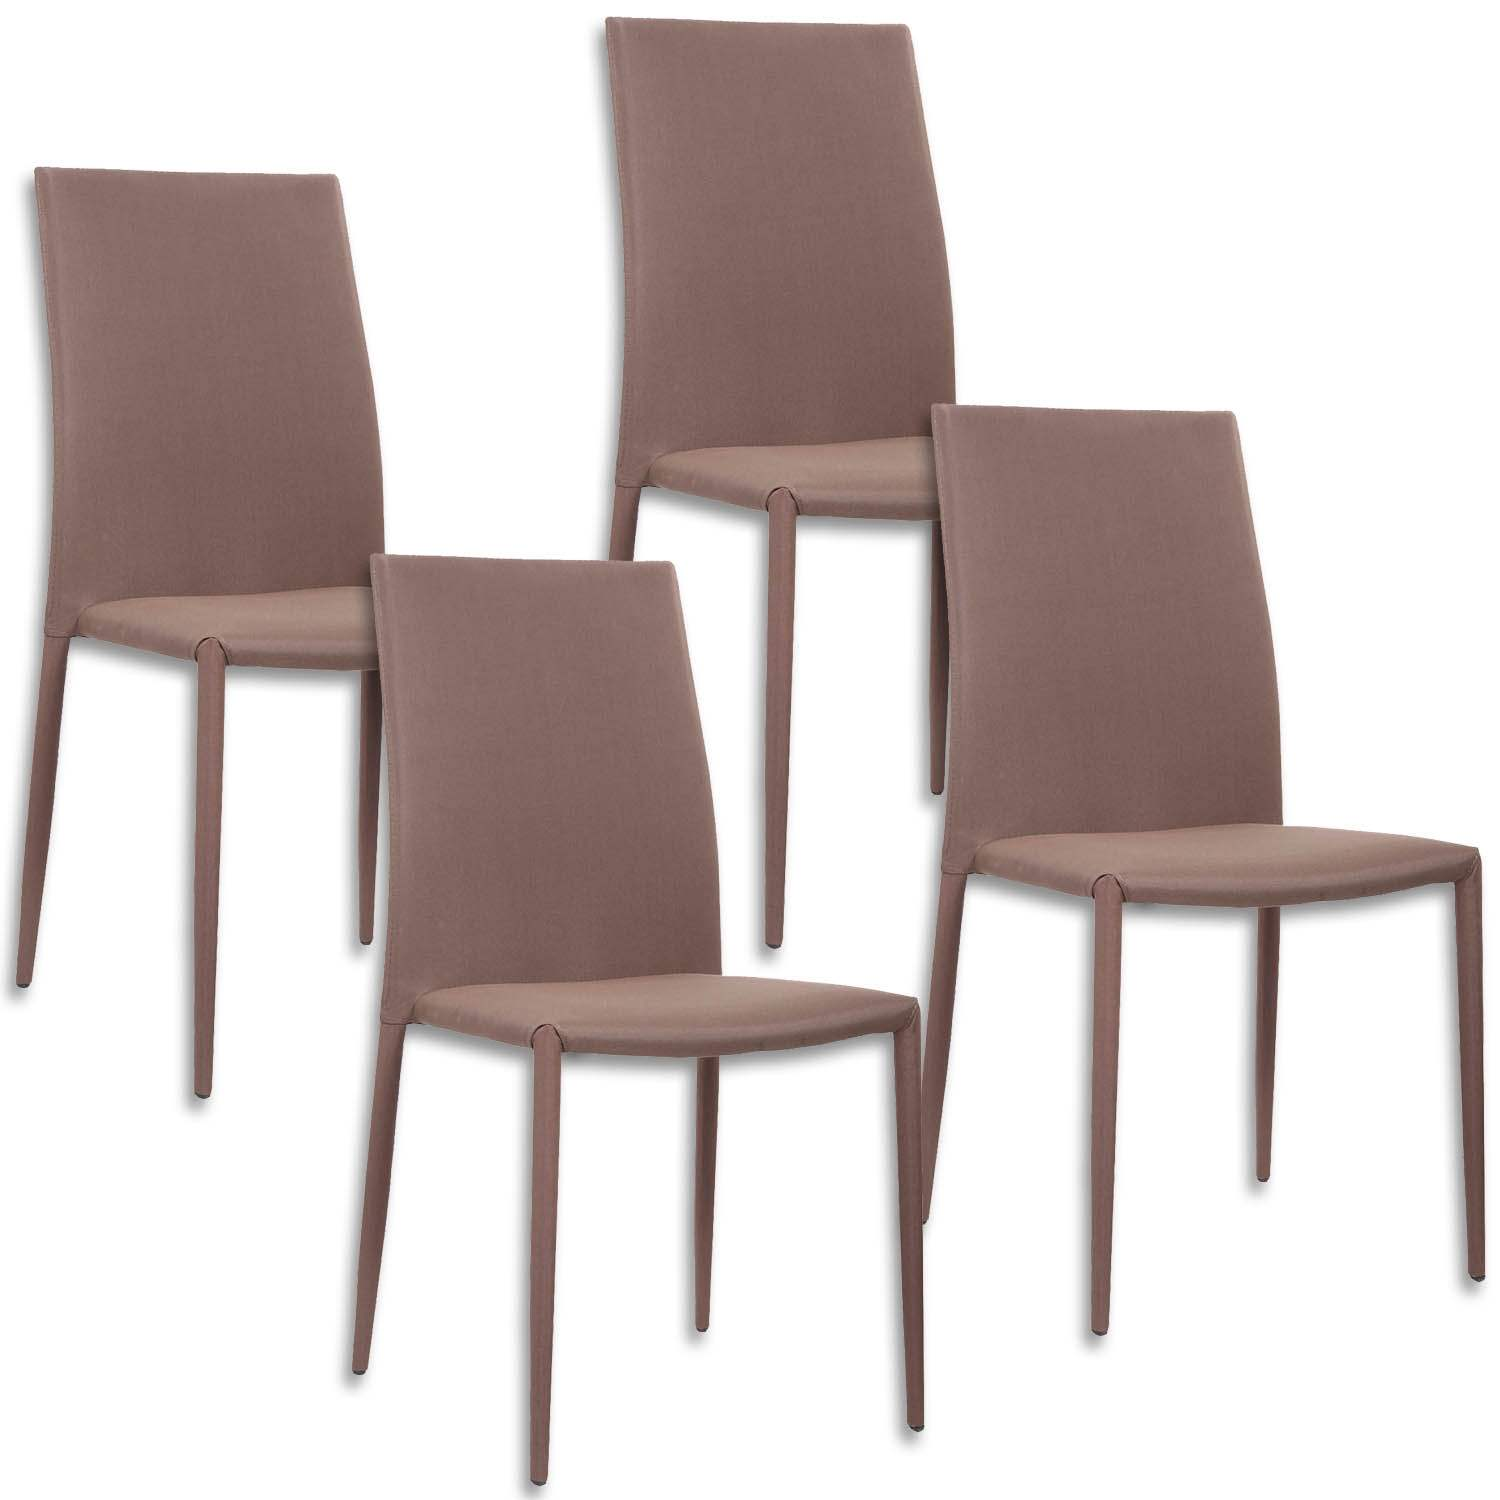 Deco in paris lot de 4 chaises marron lola lotx4 marron lola for Lot 4 chaises